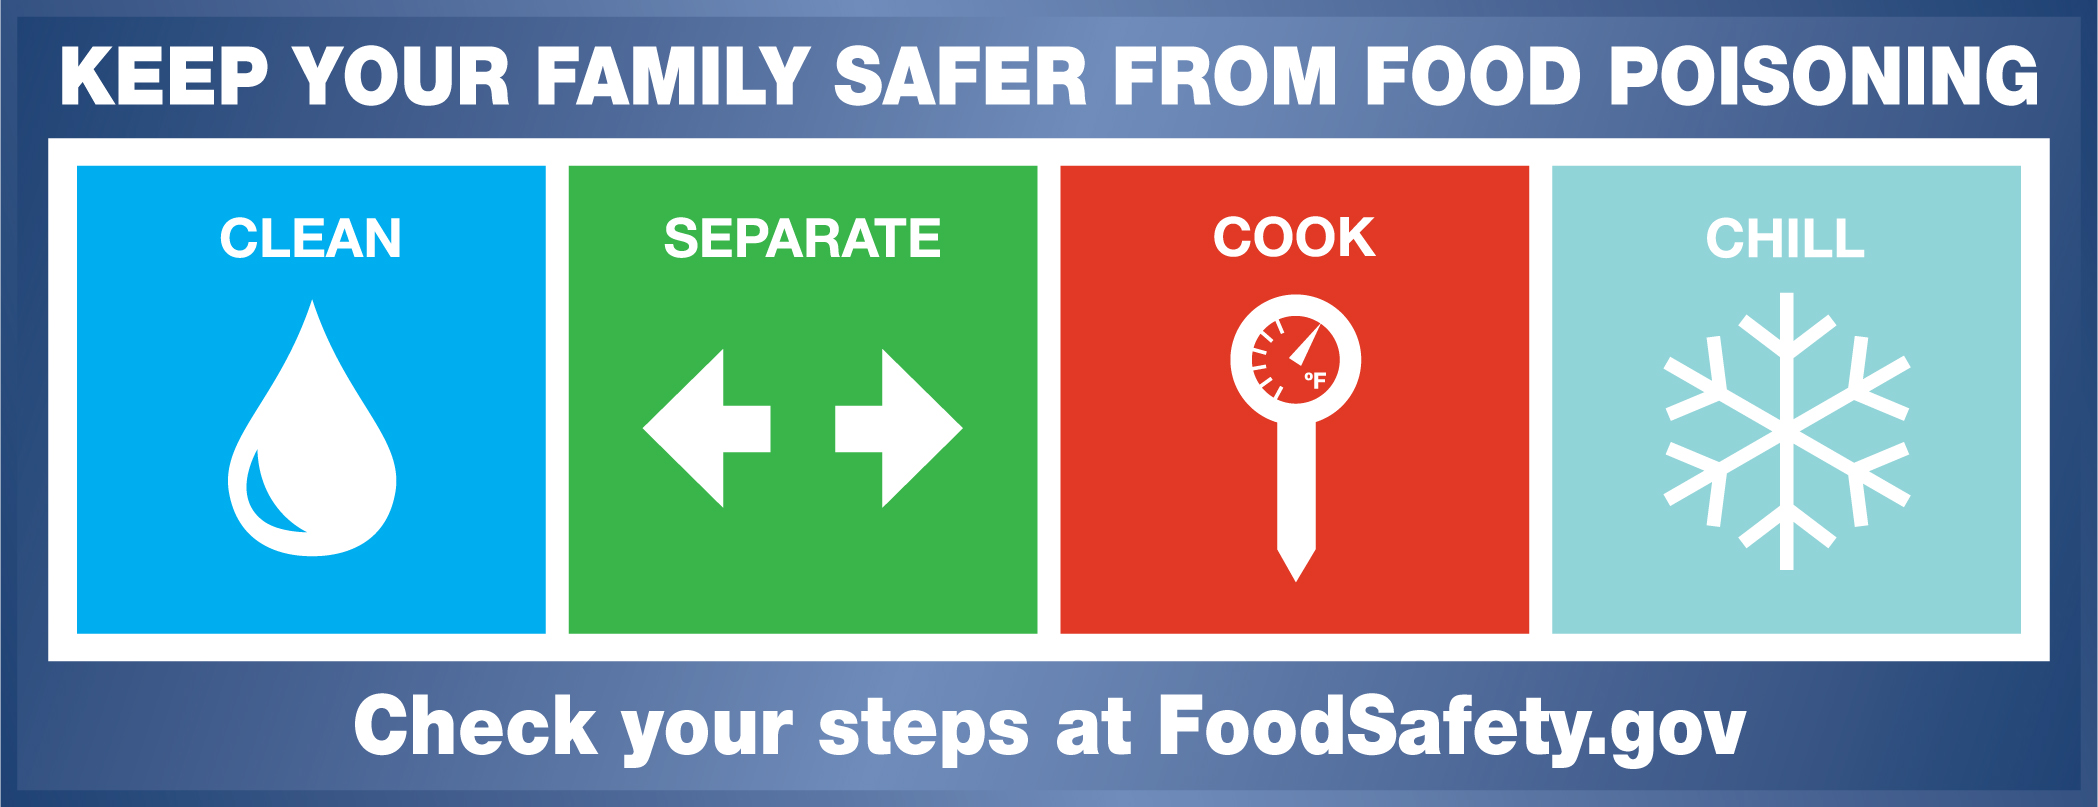 Keep Your Family Safer From Food Poisoning